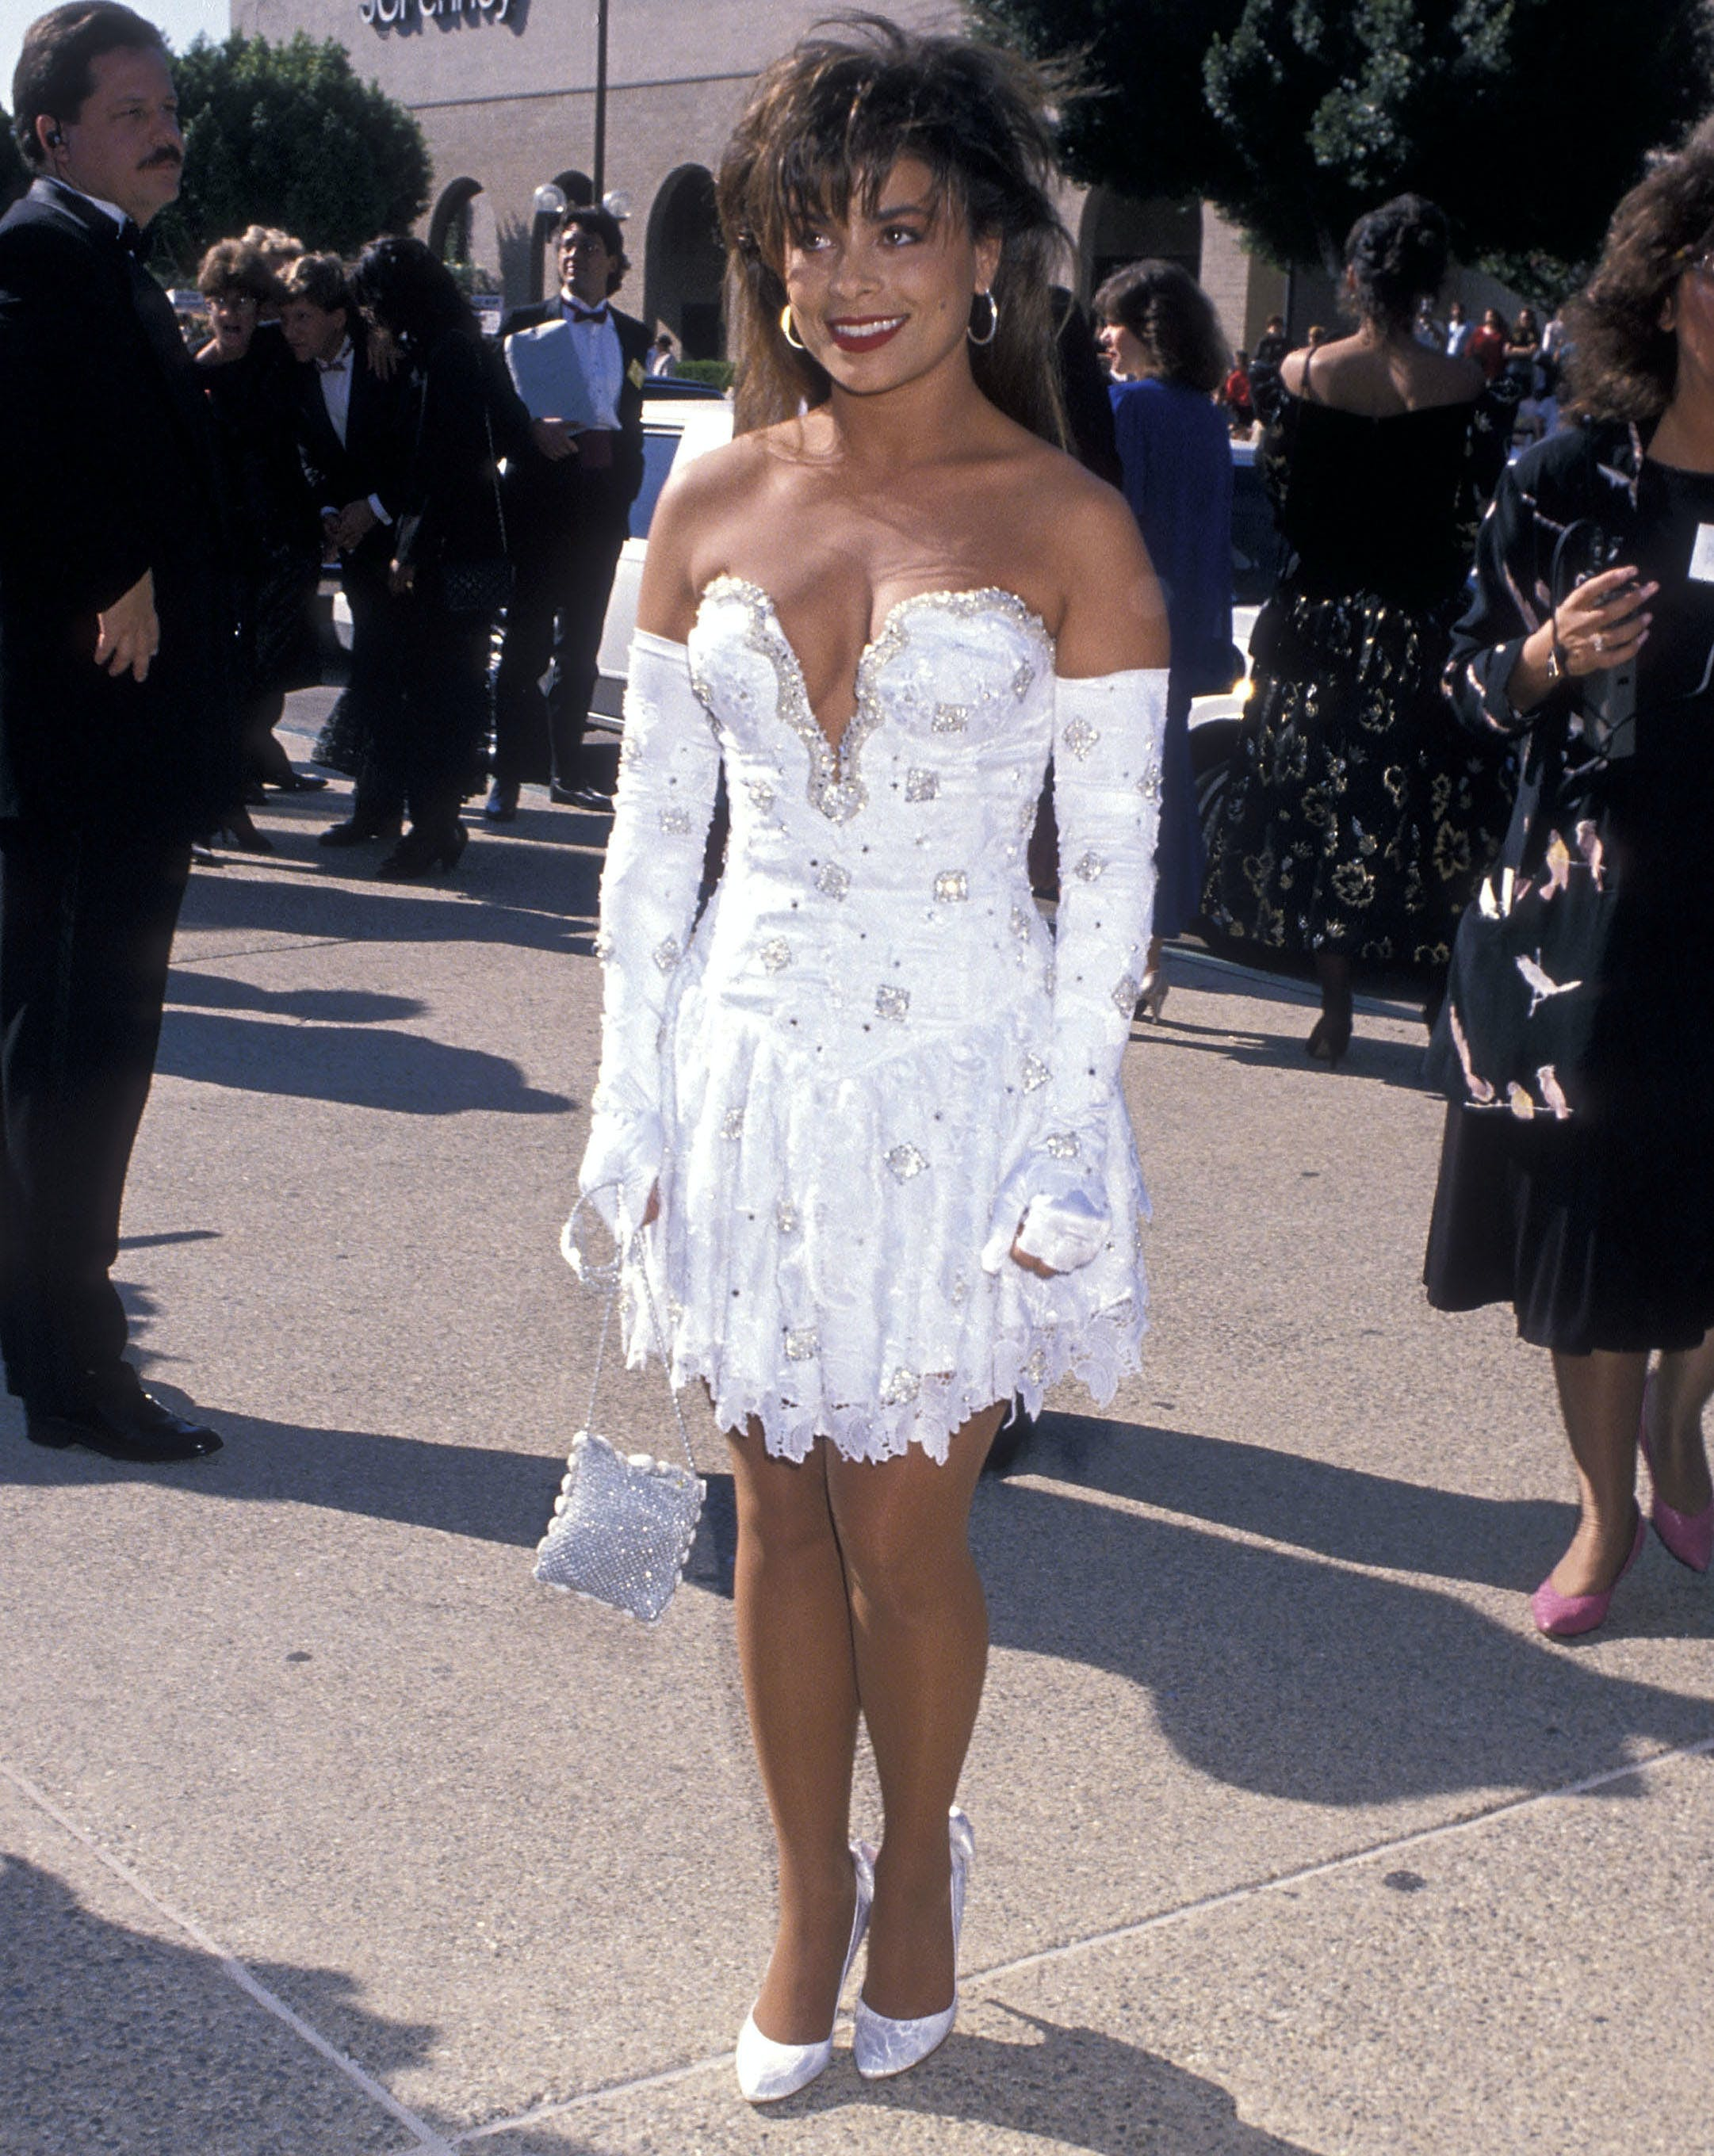 paula abdul at the 1989 emmys